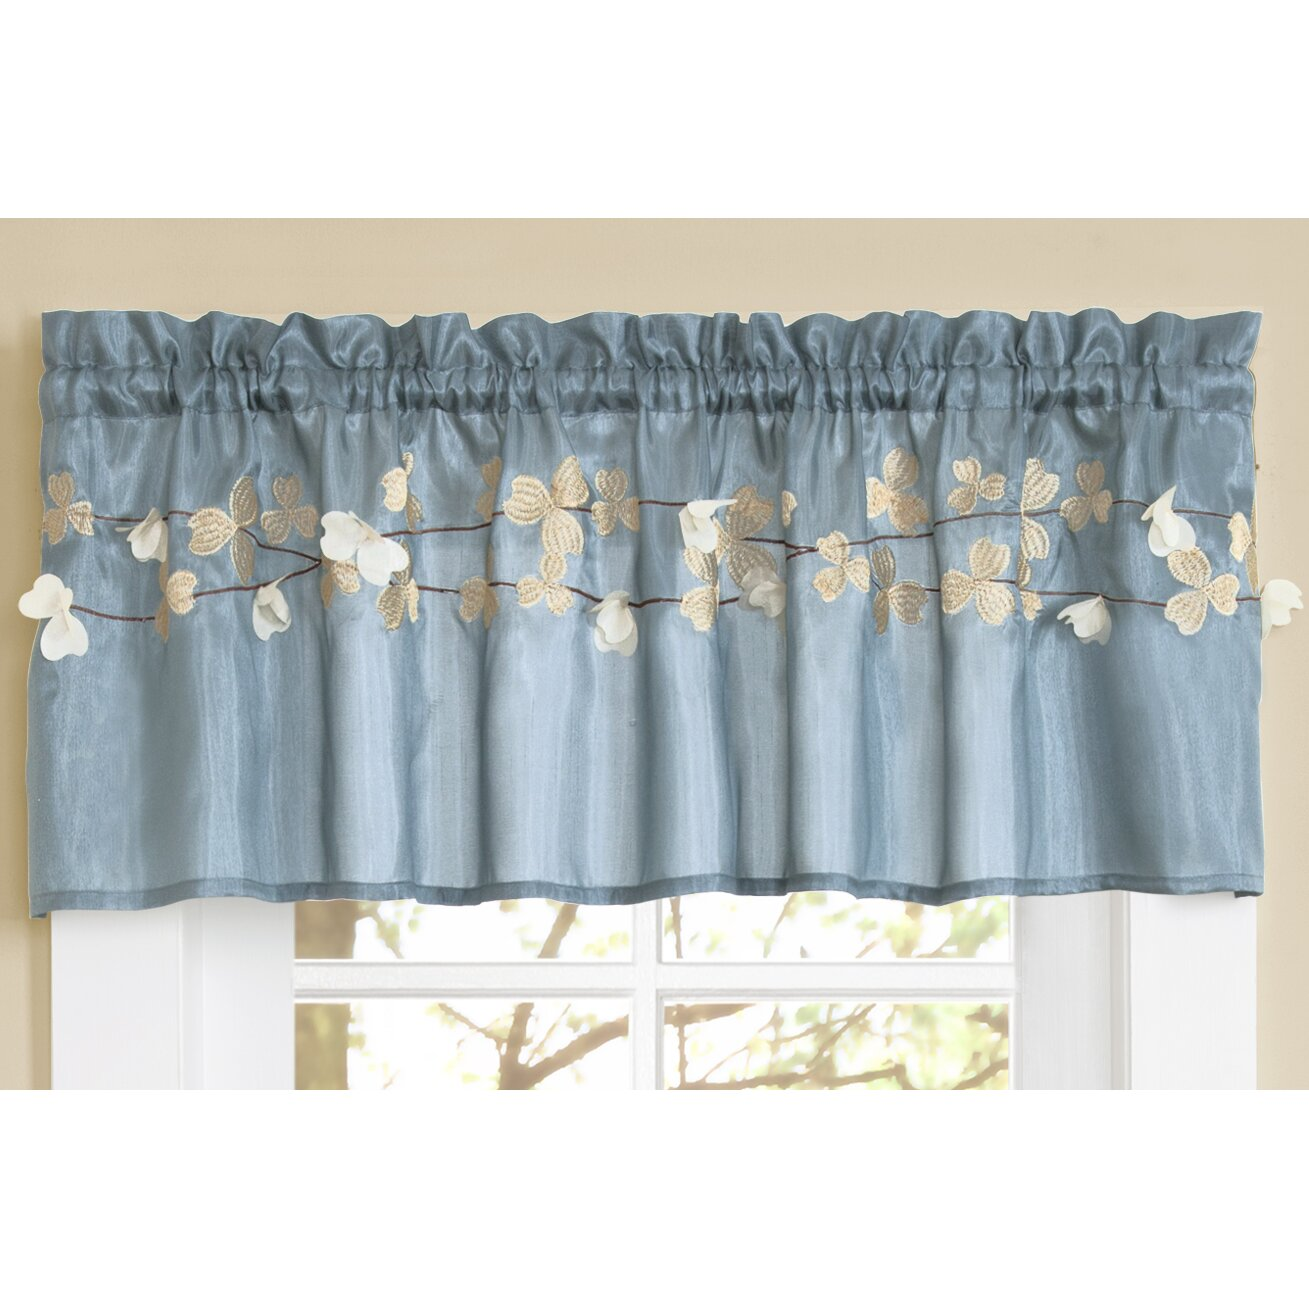 "Kitchen Curtains And Valances: Lush Decor Flower Rod Pocket Tailored Kitchen 58"" Curtain"